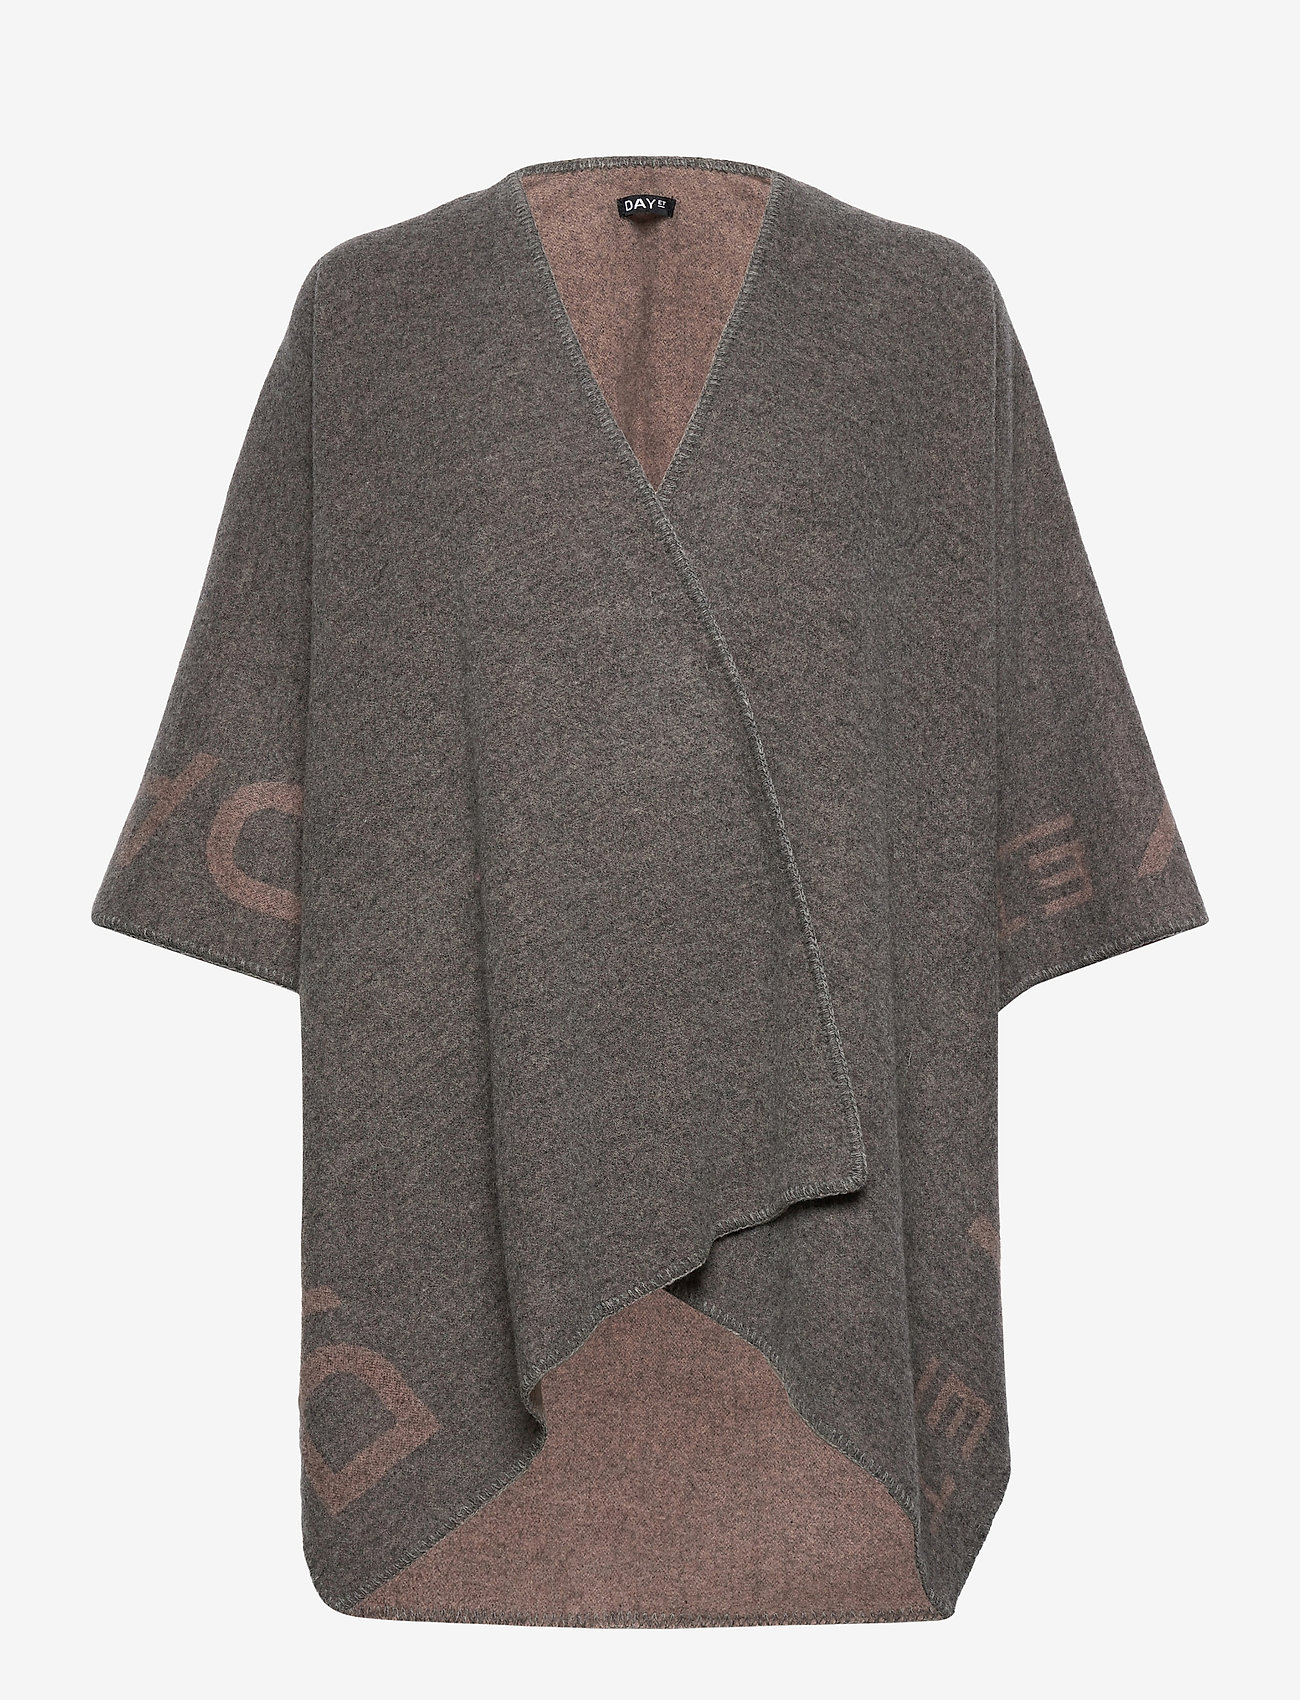 DAY et - Day ET Logo Poncho - ponchos & capes - forged iron grey - 0